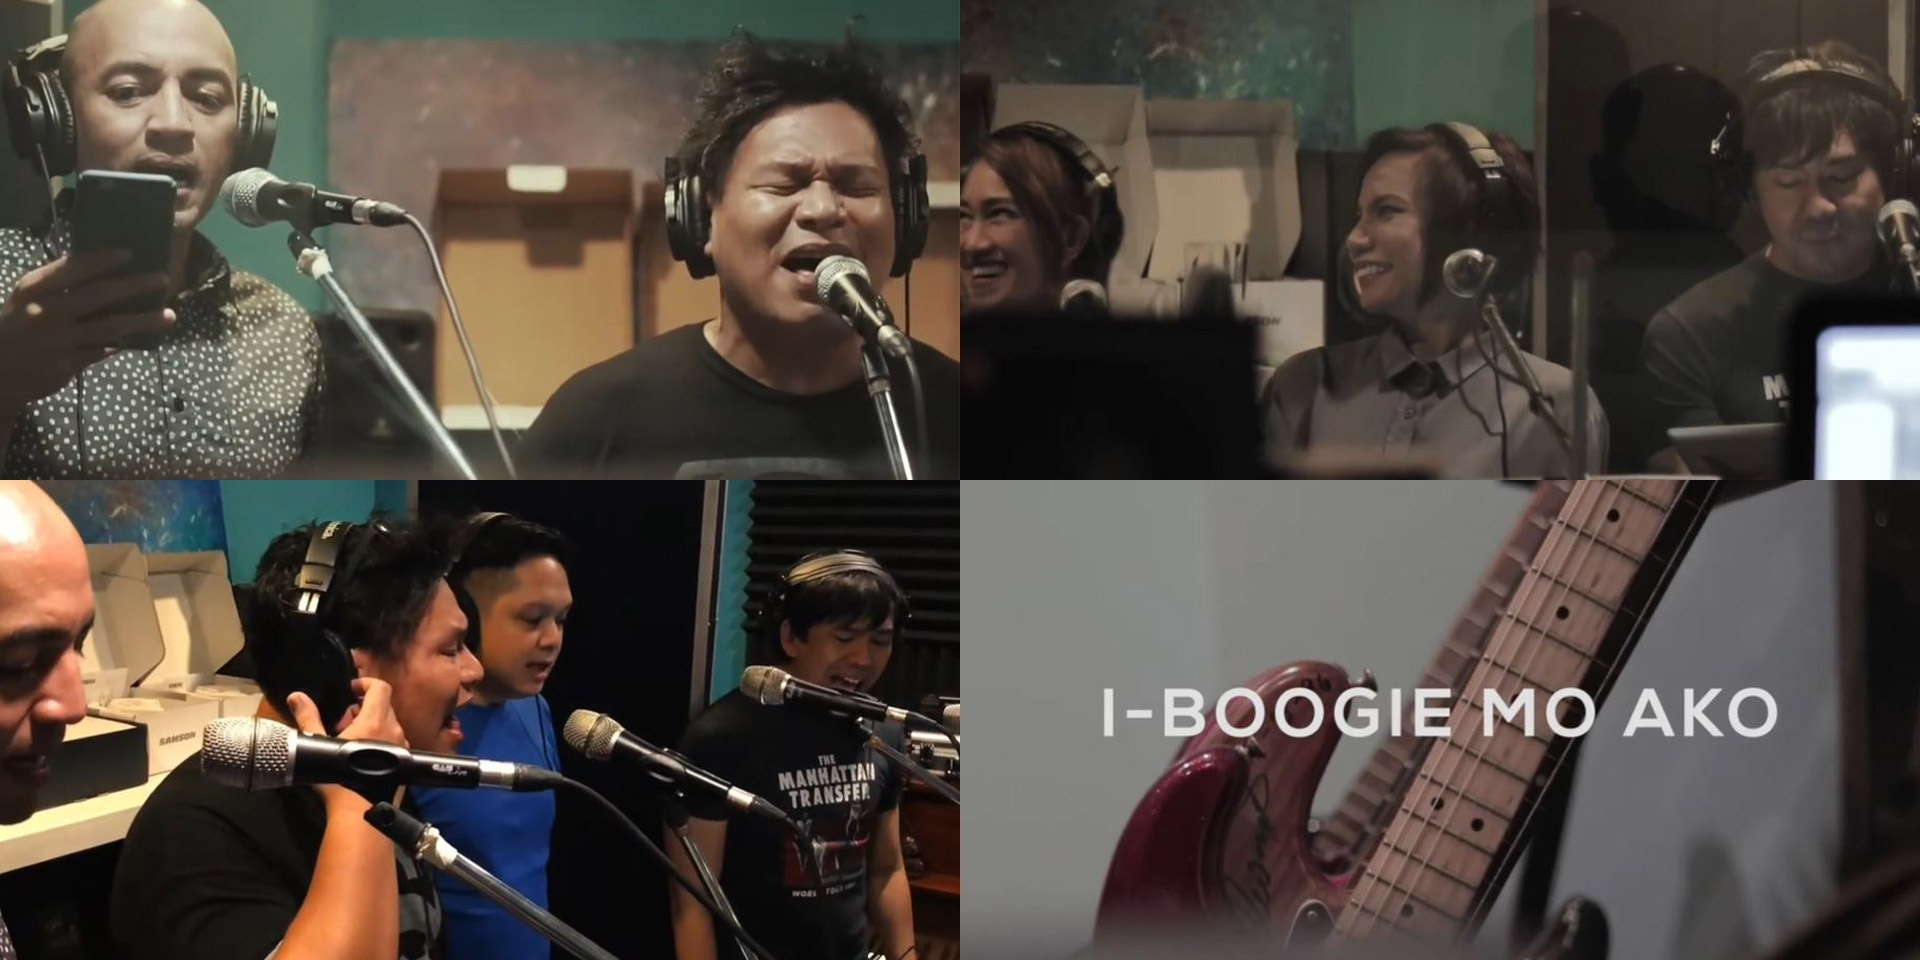 """""""It's a thrill to be collaborating with our musical heroes"""": The Itchyworms on their collab with The CompanY, 'I-Boogie Mo Ako Baby' – watch"""